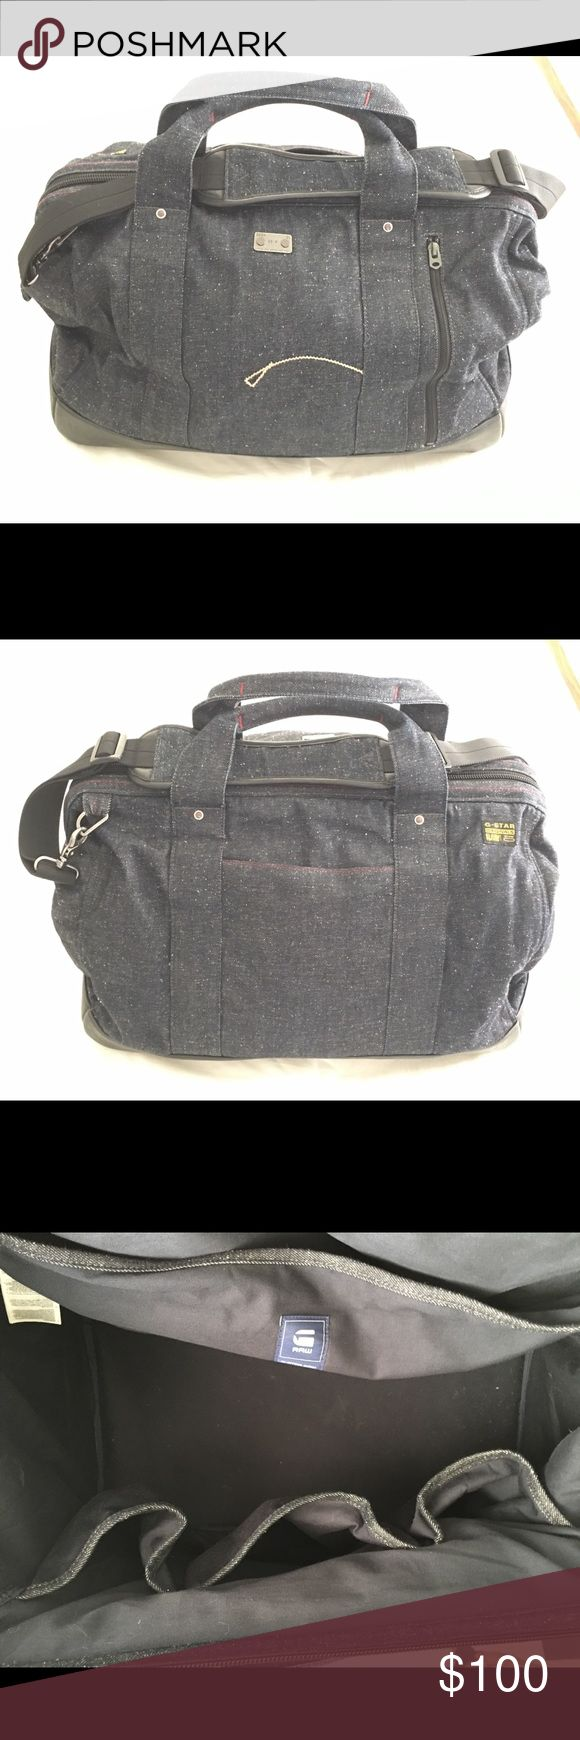 G-star Denim weekender bag Versatile weekend bag. Organic raw denim. Shoulder strap included. Opens like old school dr.'s bag. Great condition! G-Star Bags Luggage & Travel Bags